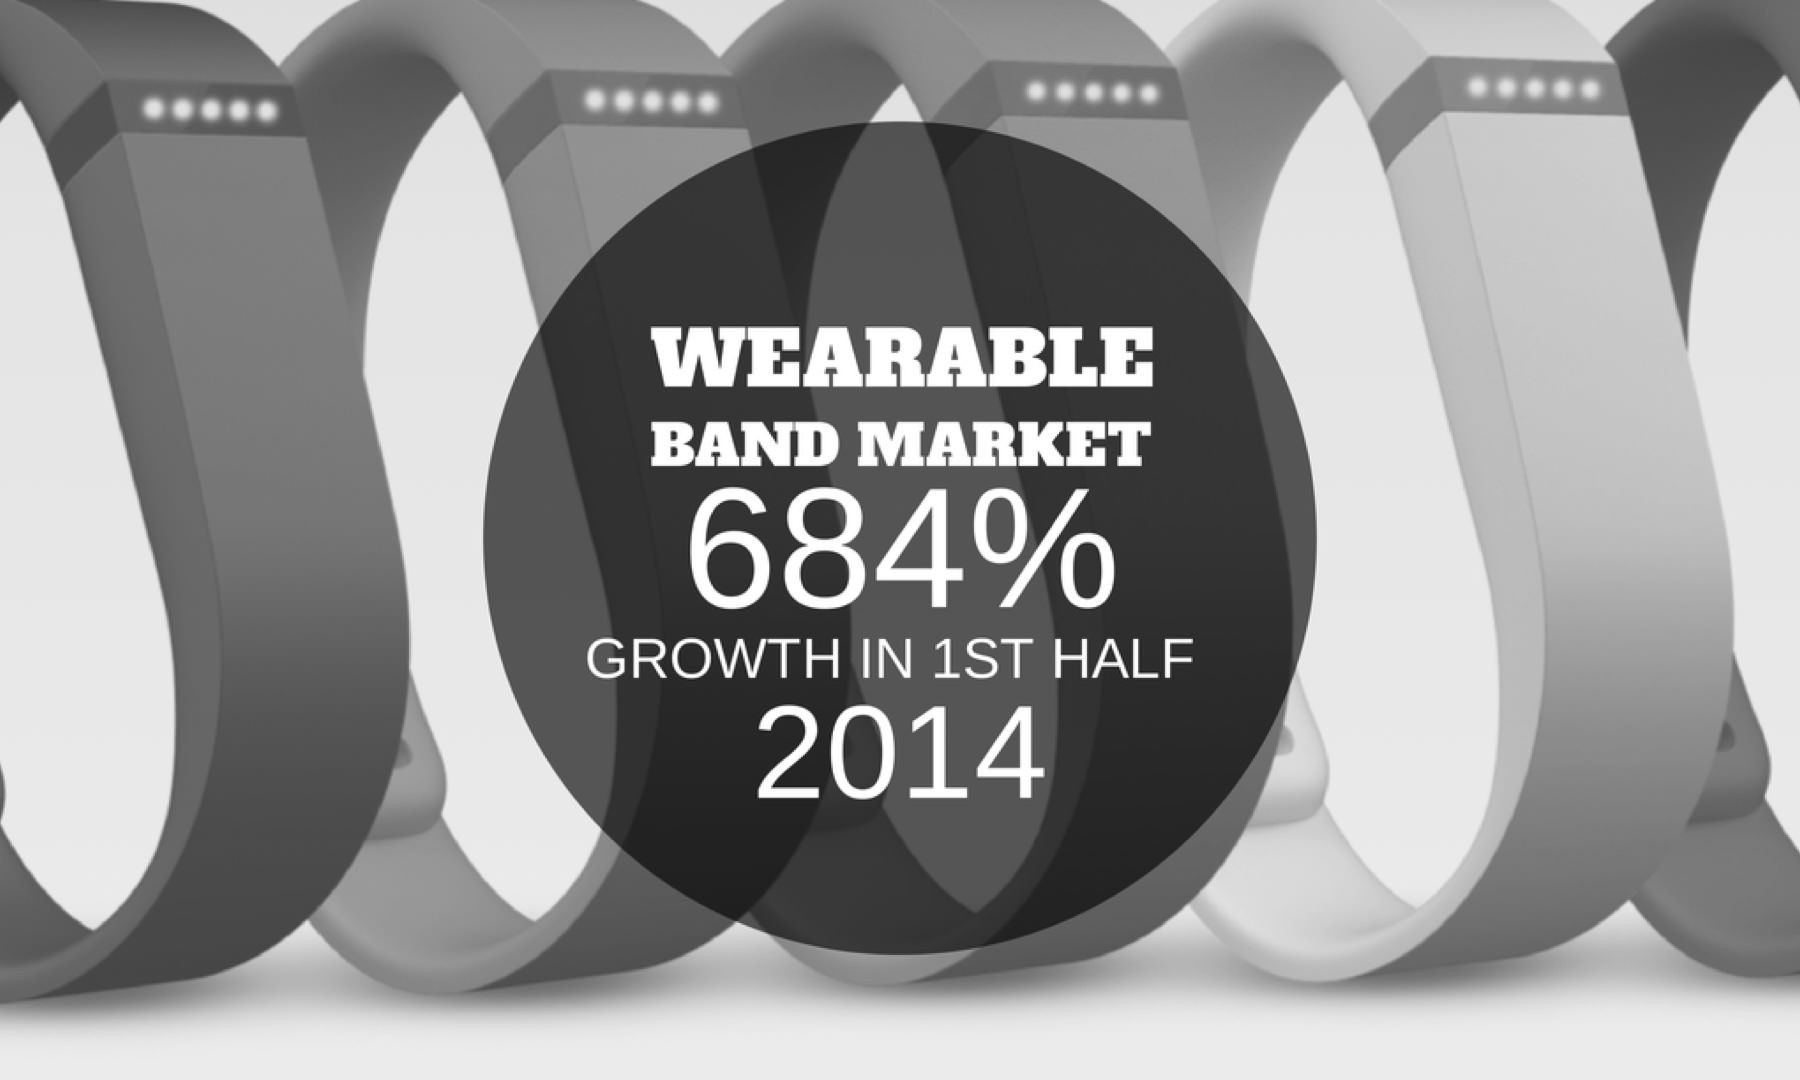 Wearable Band Market Skyrockets